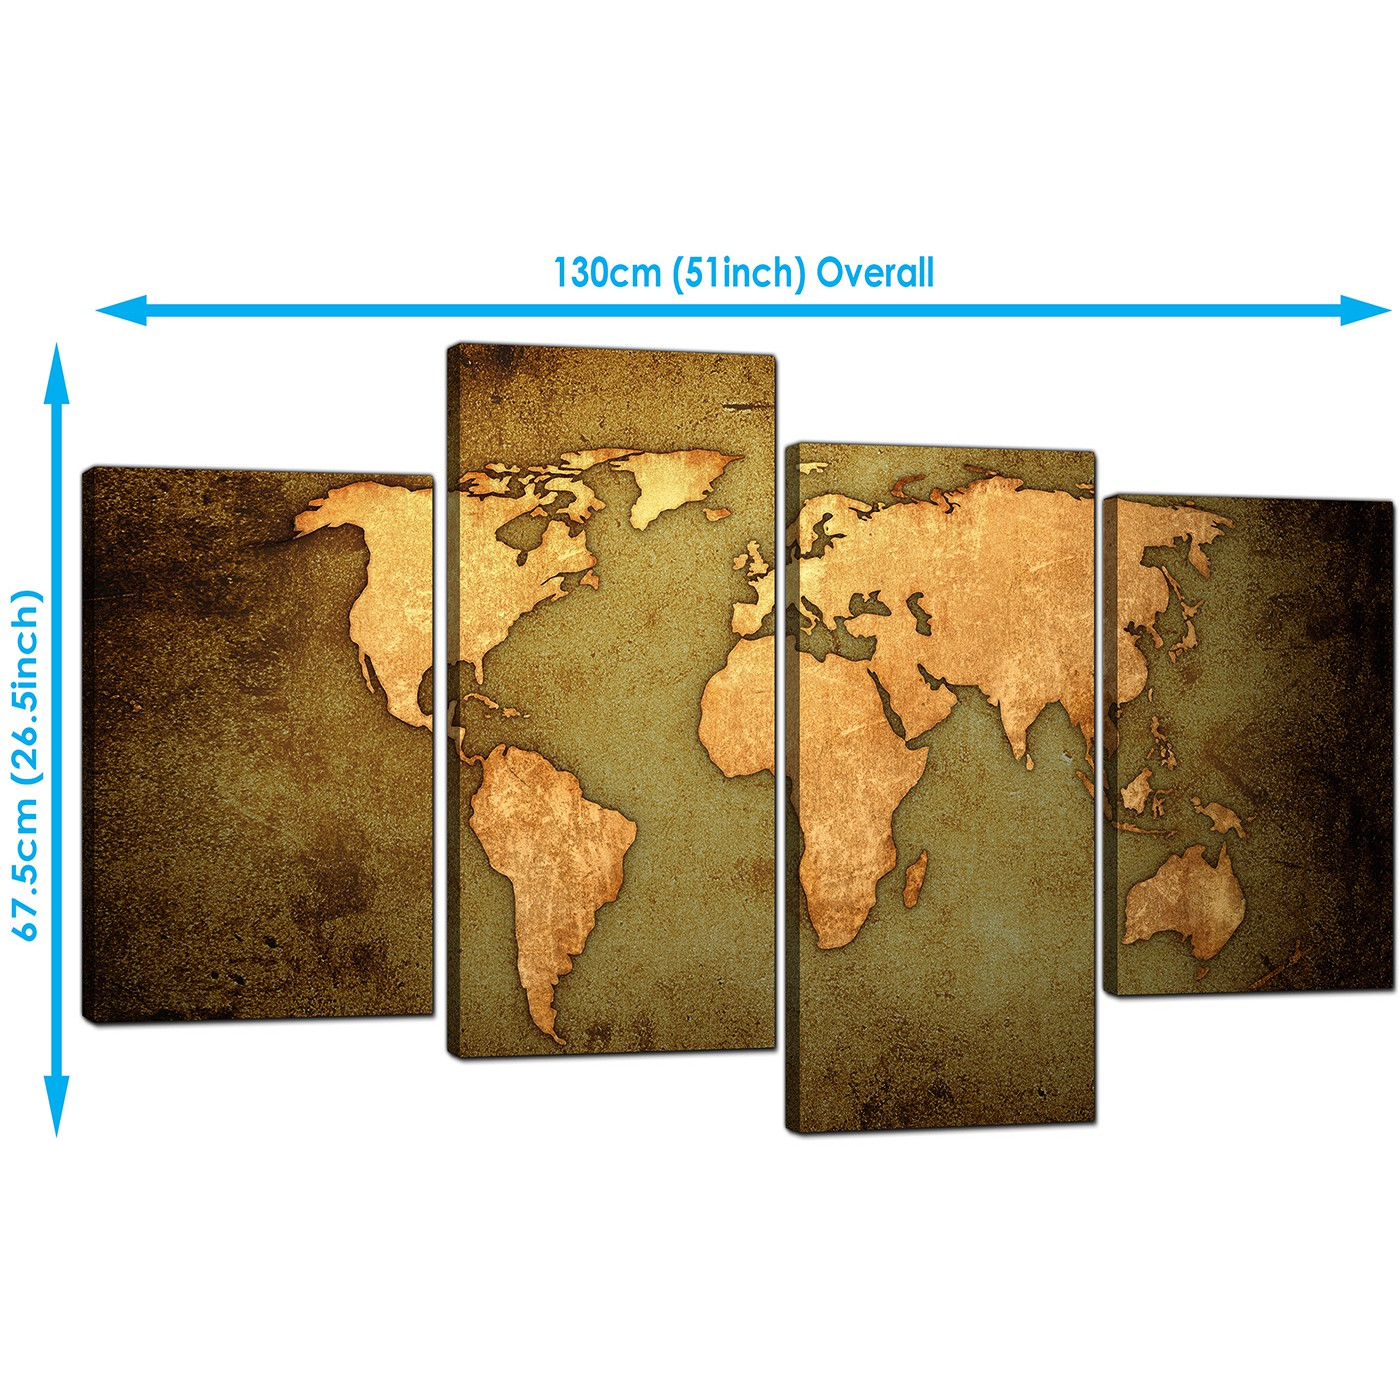 Canvas prints of a world map in green and brown for your living room display gallery item 5 world map canvas wall art in green and tan leather effect display gallery item 6 gumiabroncs Image collections